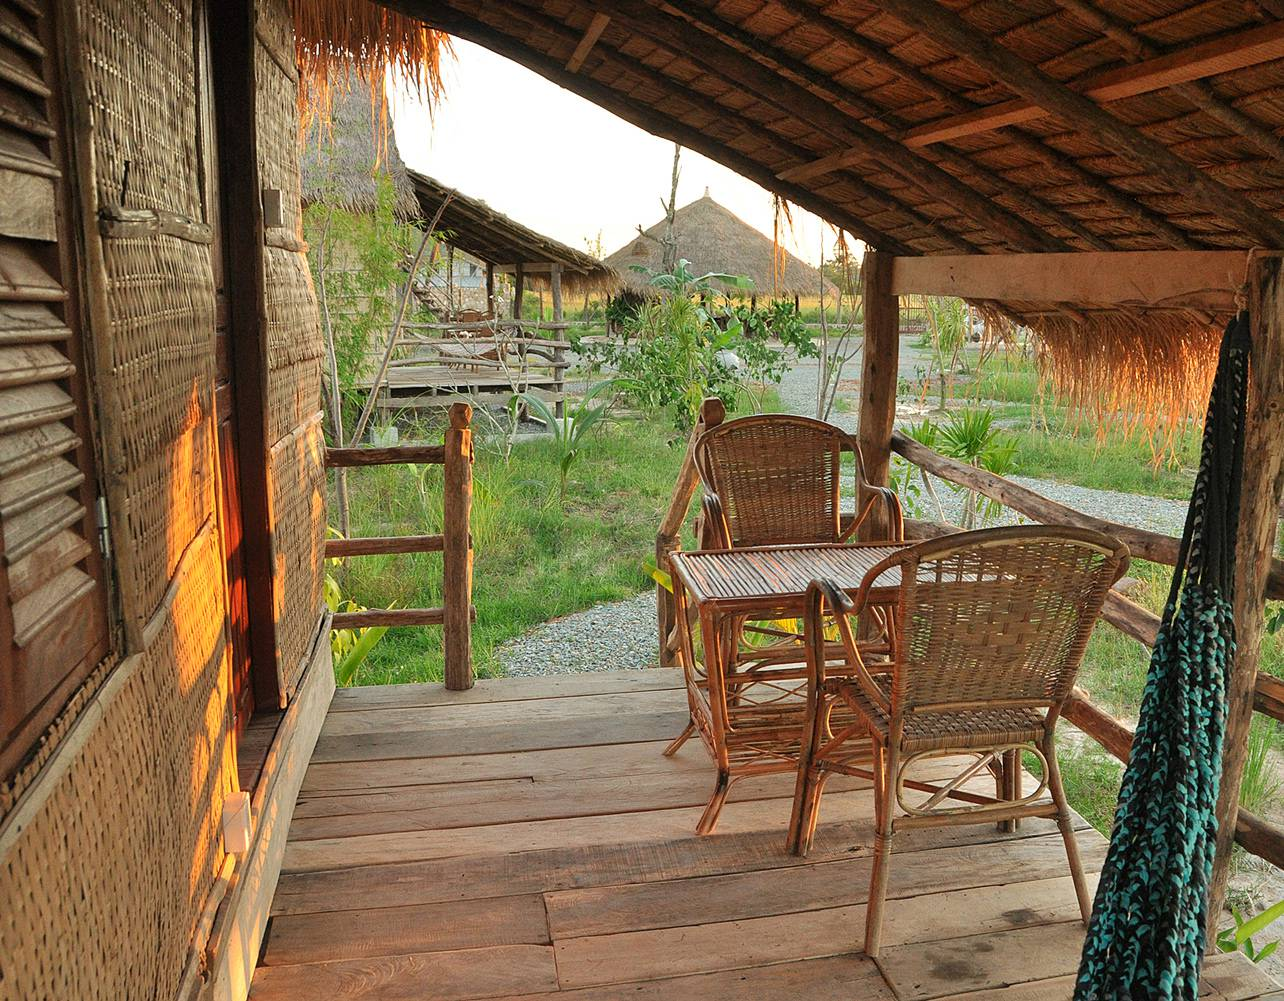 Khmer Village Bungalow resort, Кеп, Камбоджа 1123096